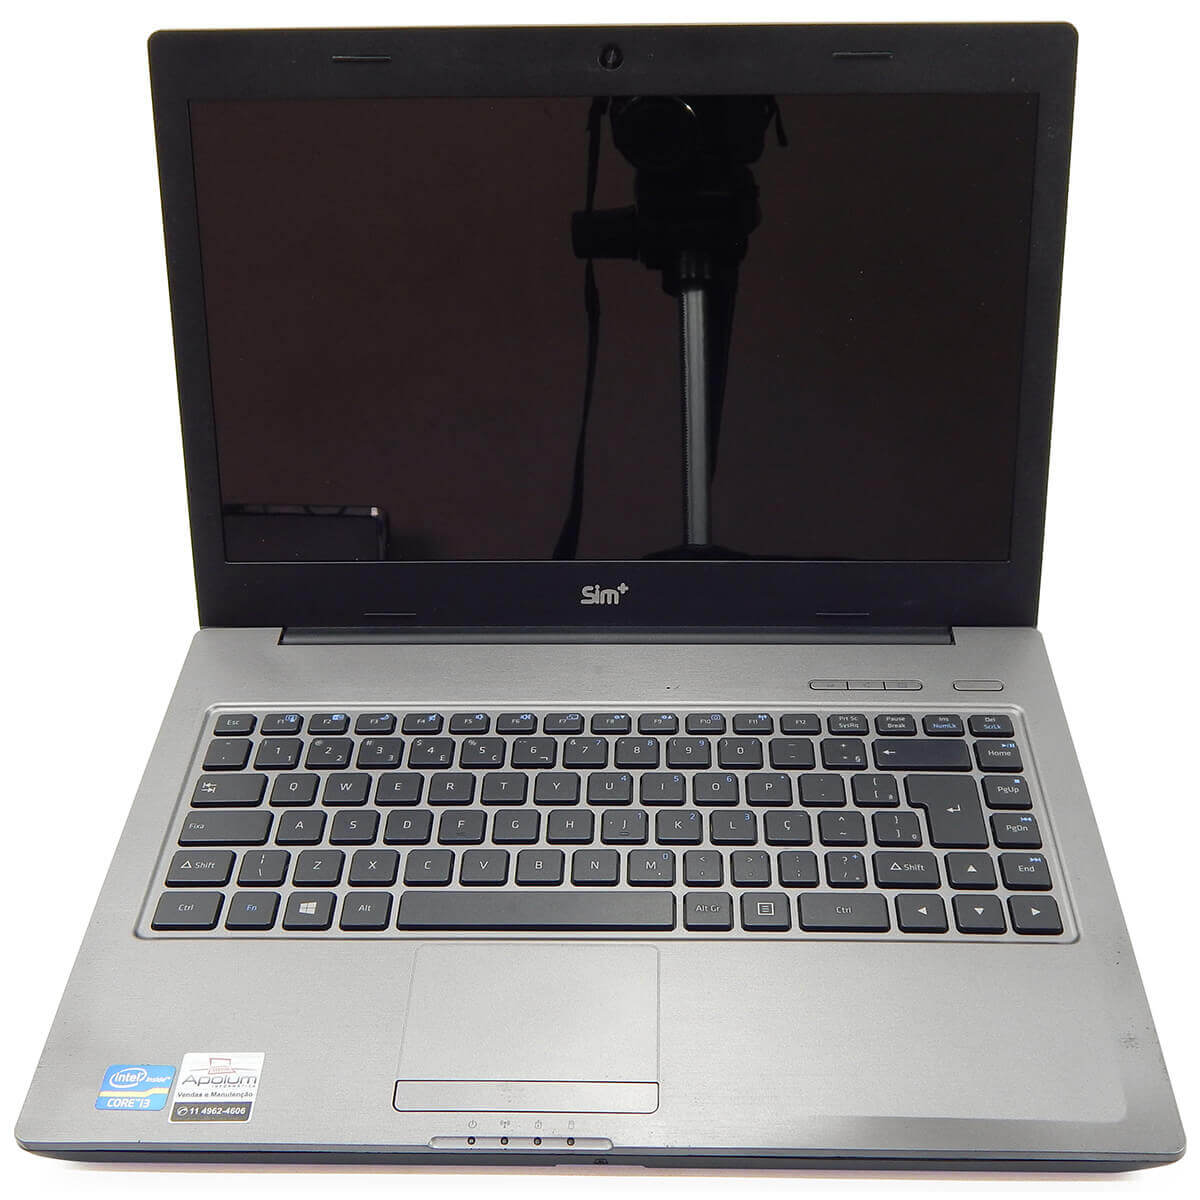 NOTEBOOK POSITIVO SIM 5020m I3-3110M 6Gb 500Gb HD Dvd - Seminovo